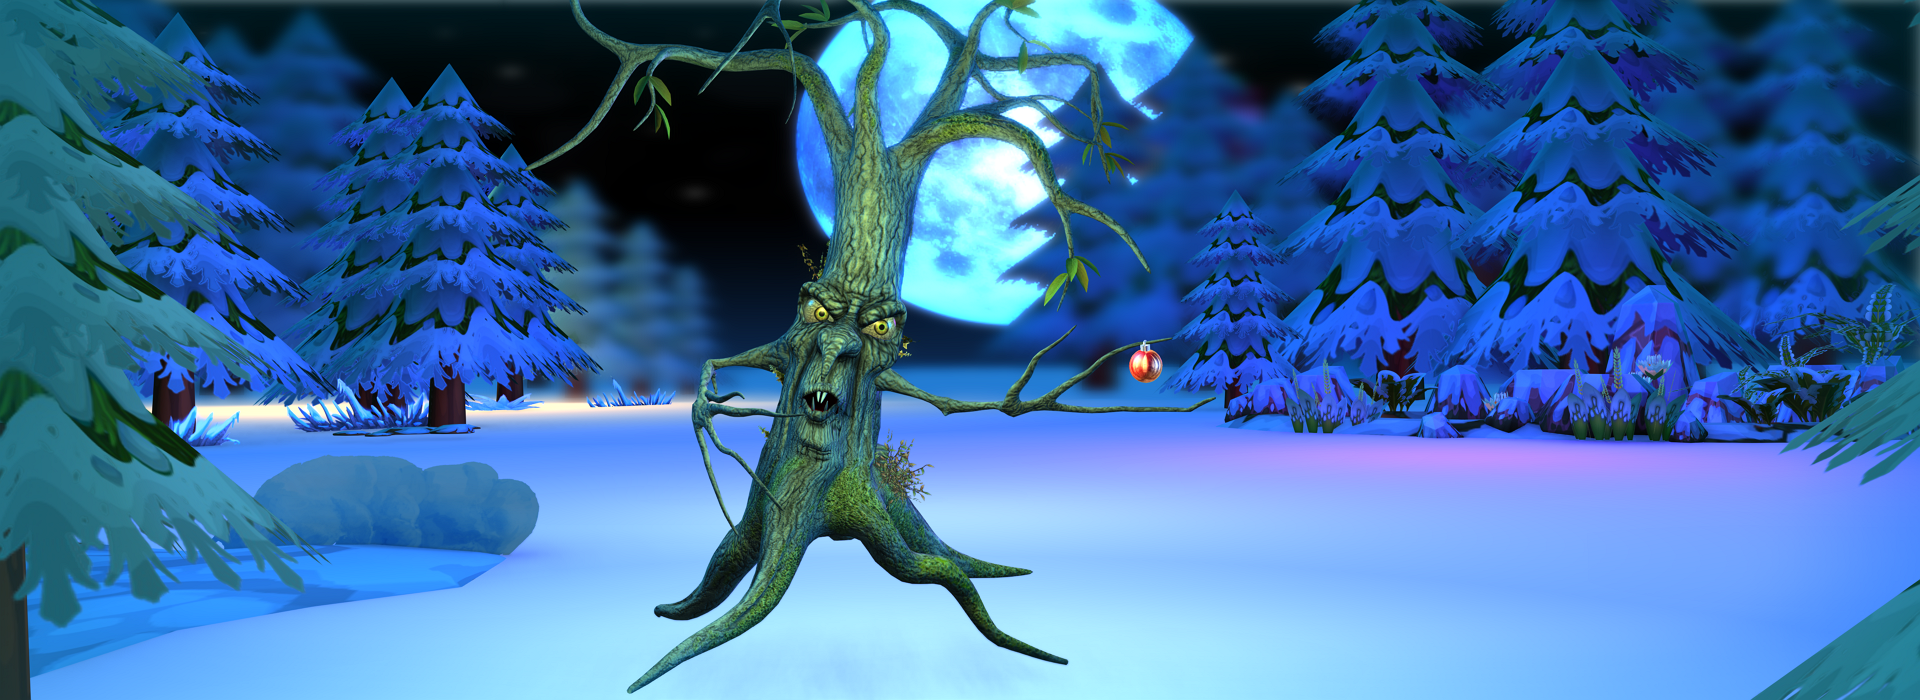 Christmas Ent Banner 3A.png